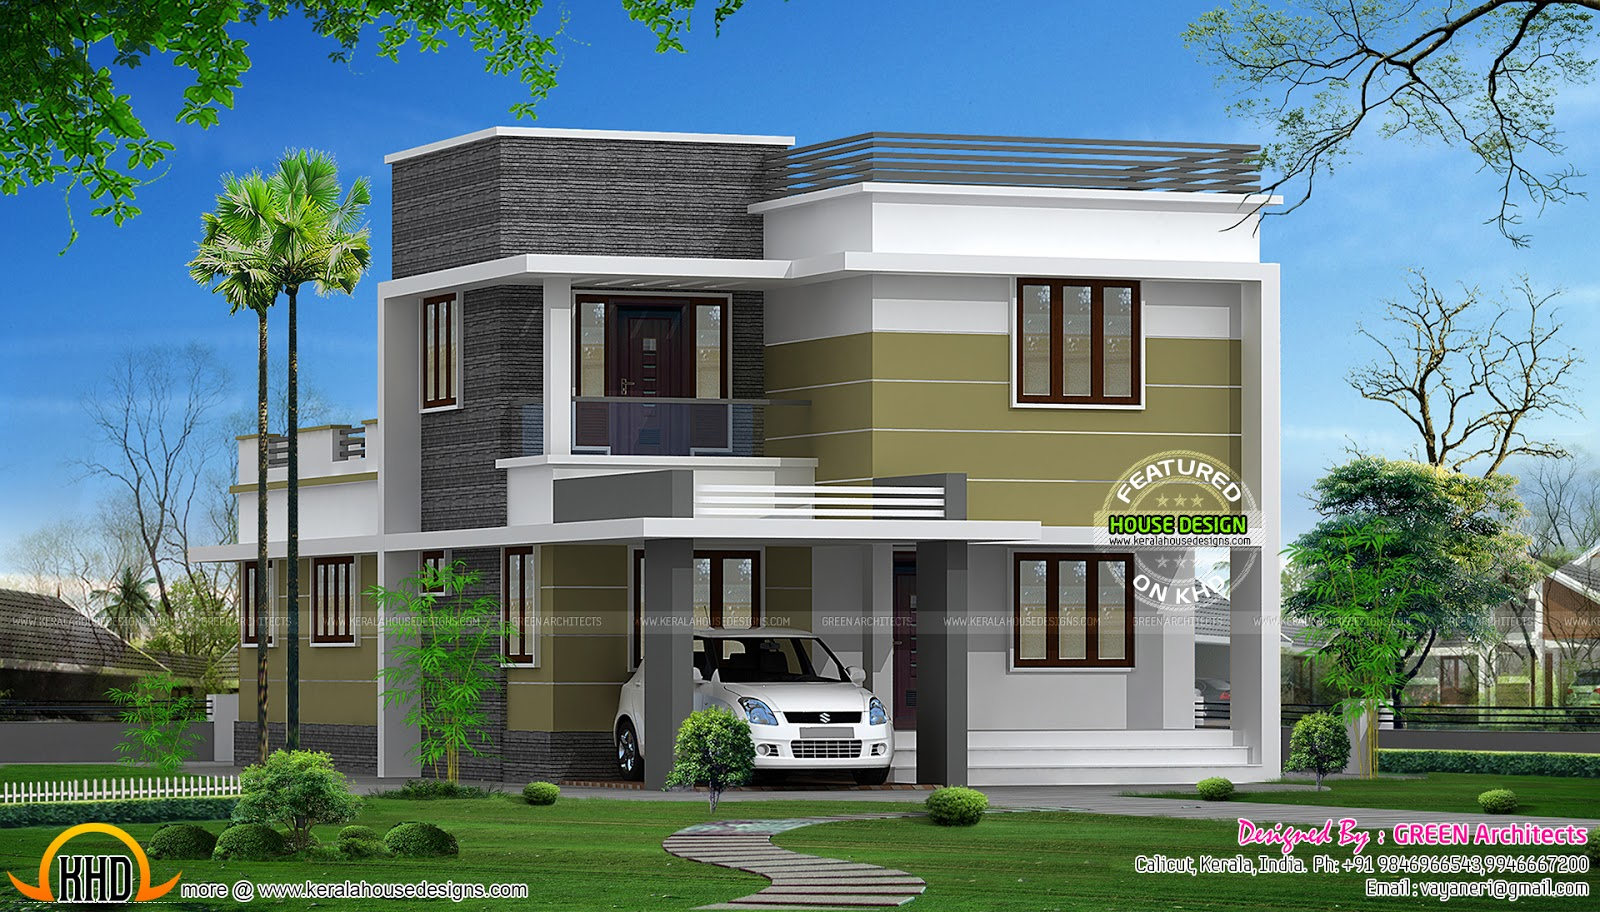 186 sq m small double storied house in kerala kerala for Beautiful small home pictures